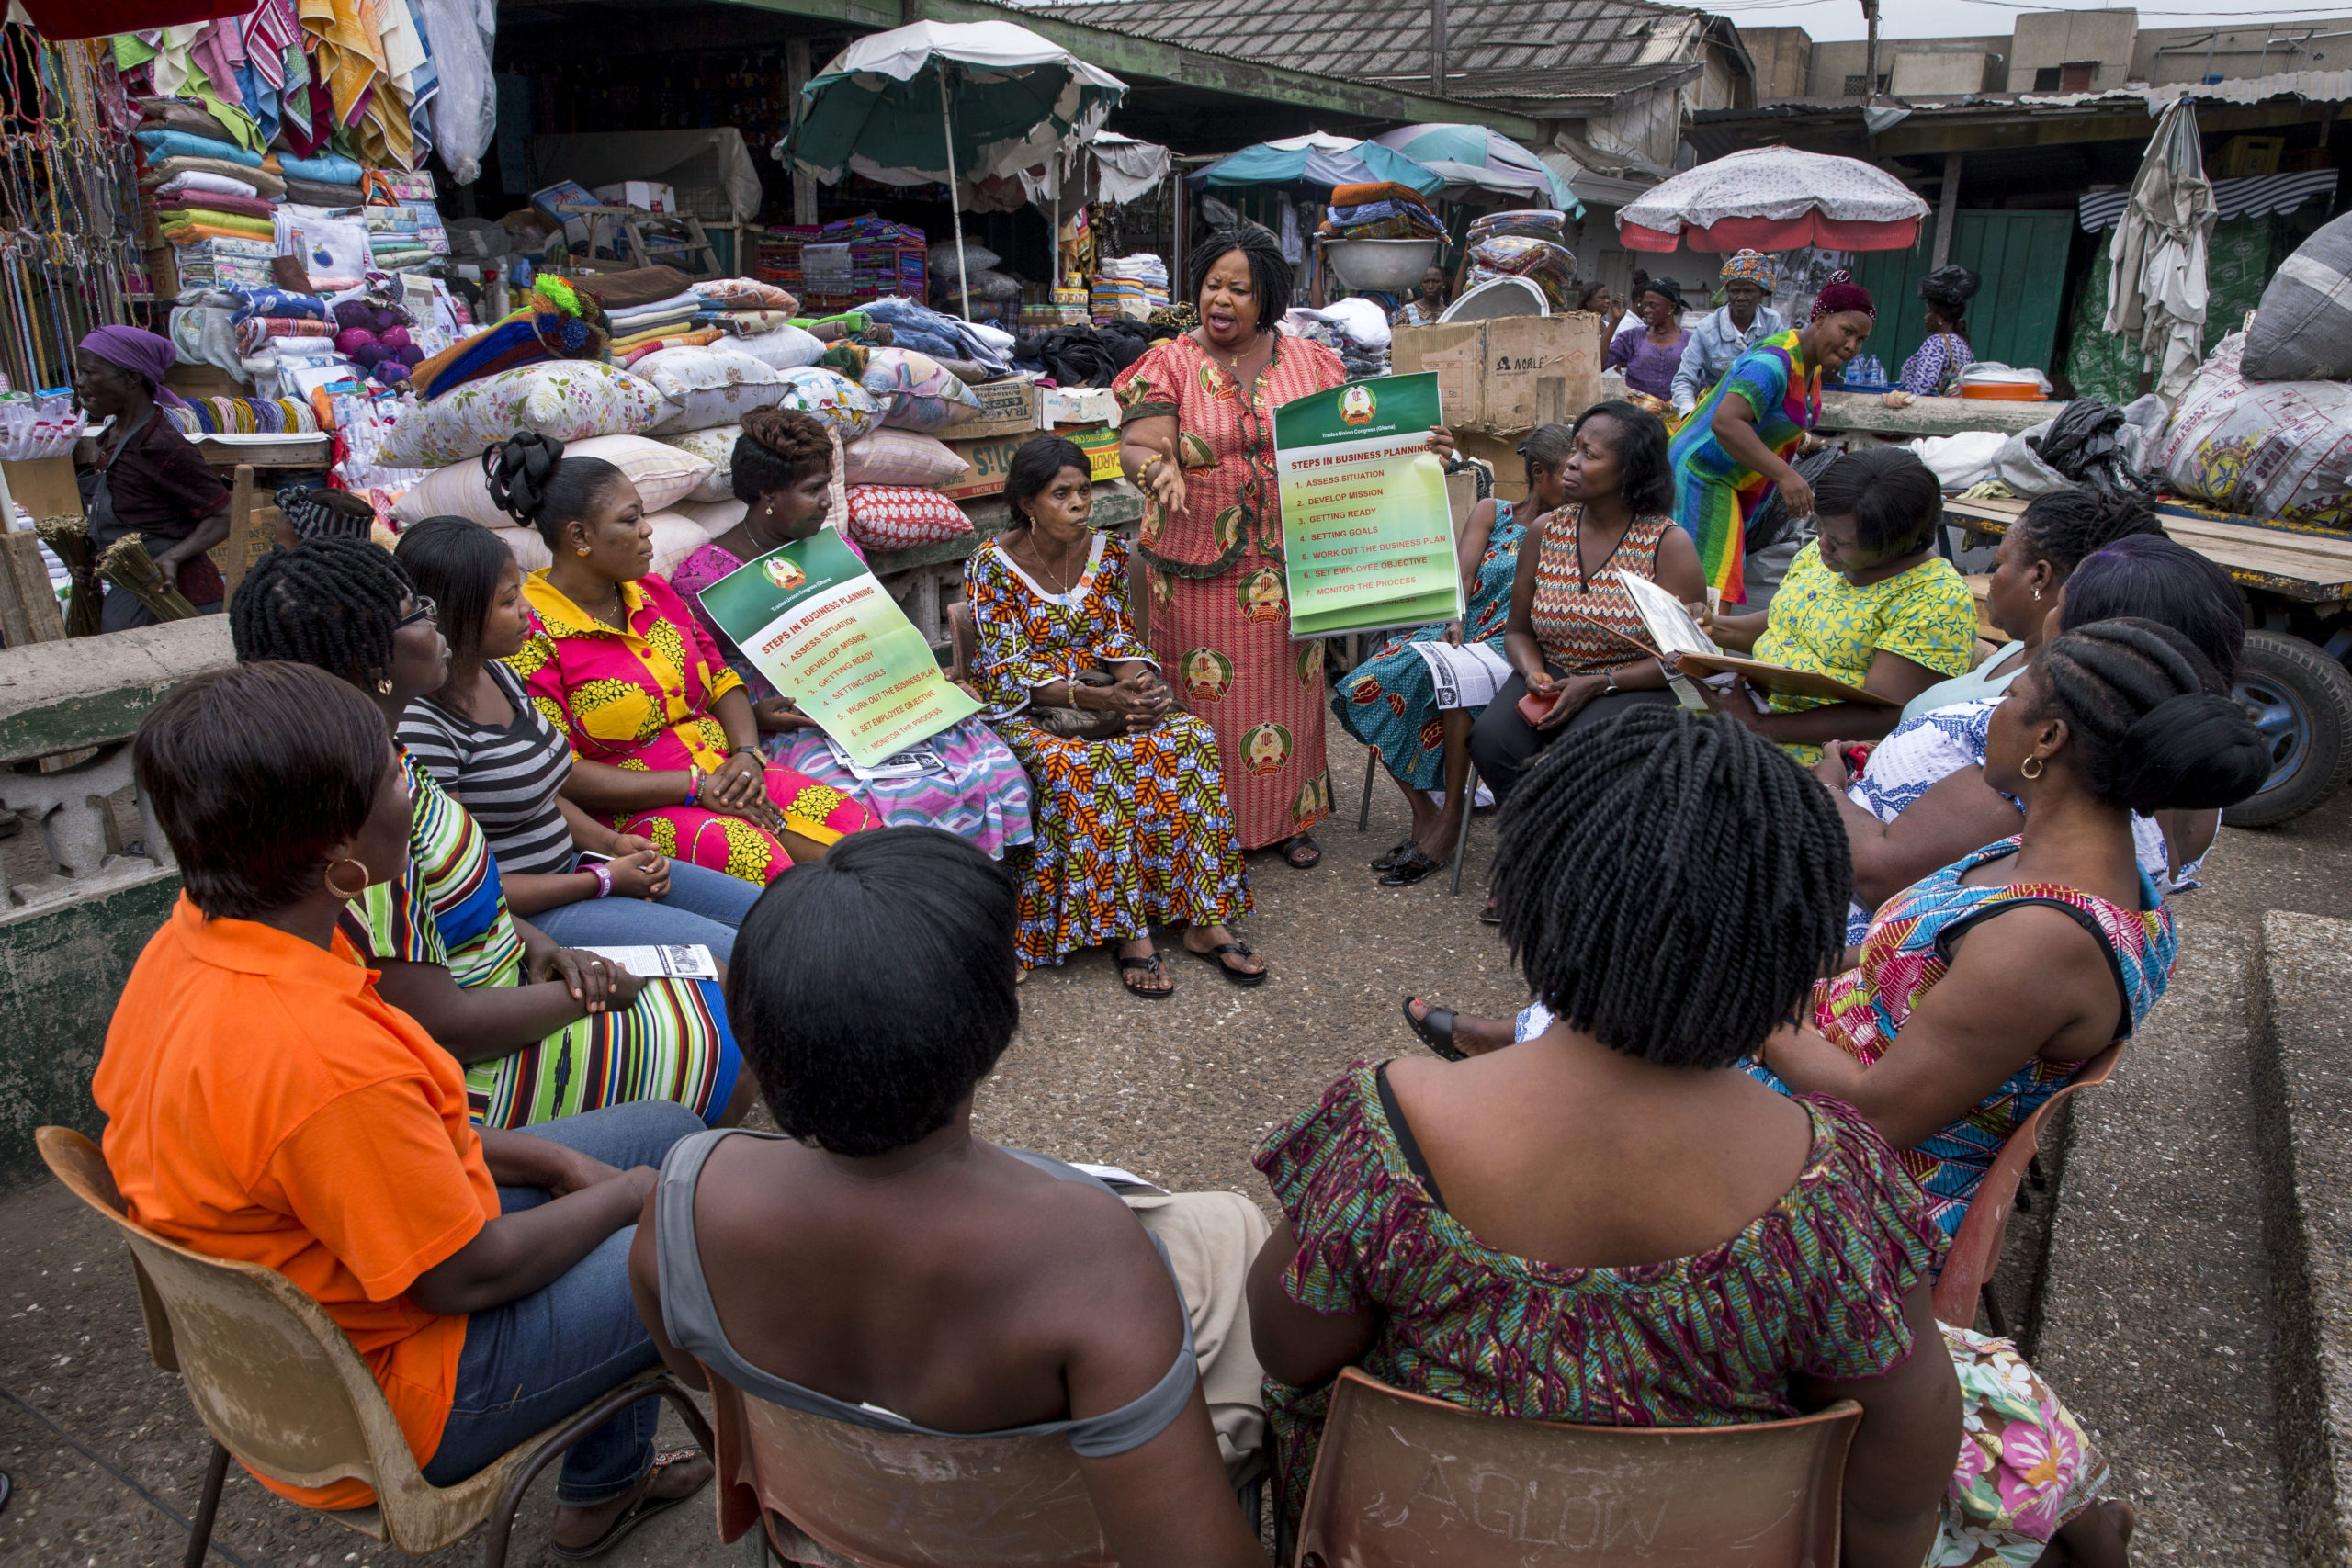 In the shadows of the COVID-19 response: Informal workers and the rise of Gender-Based Violence